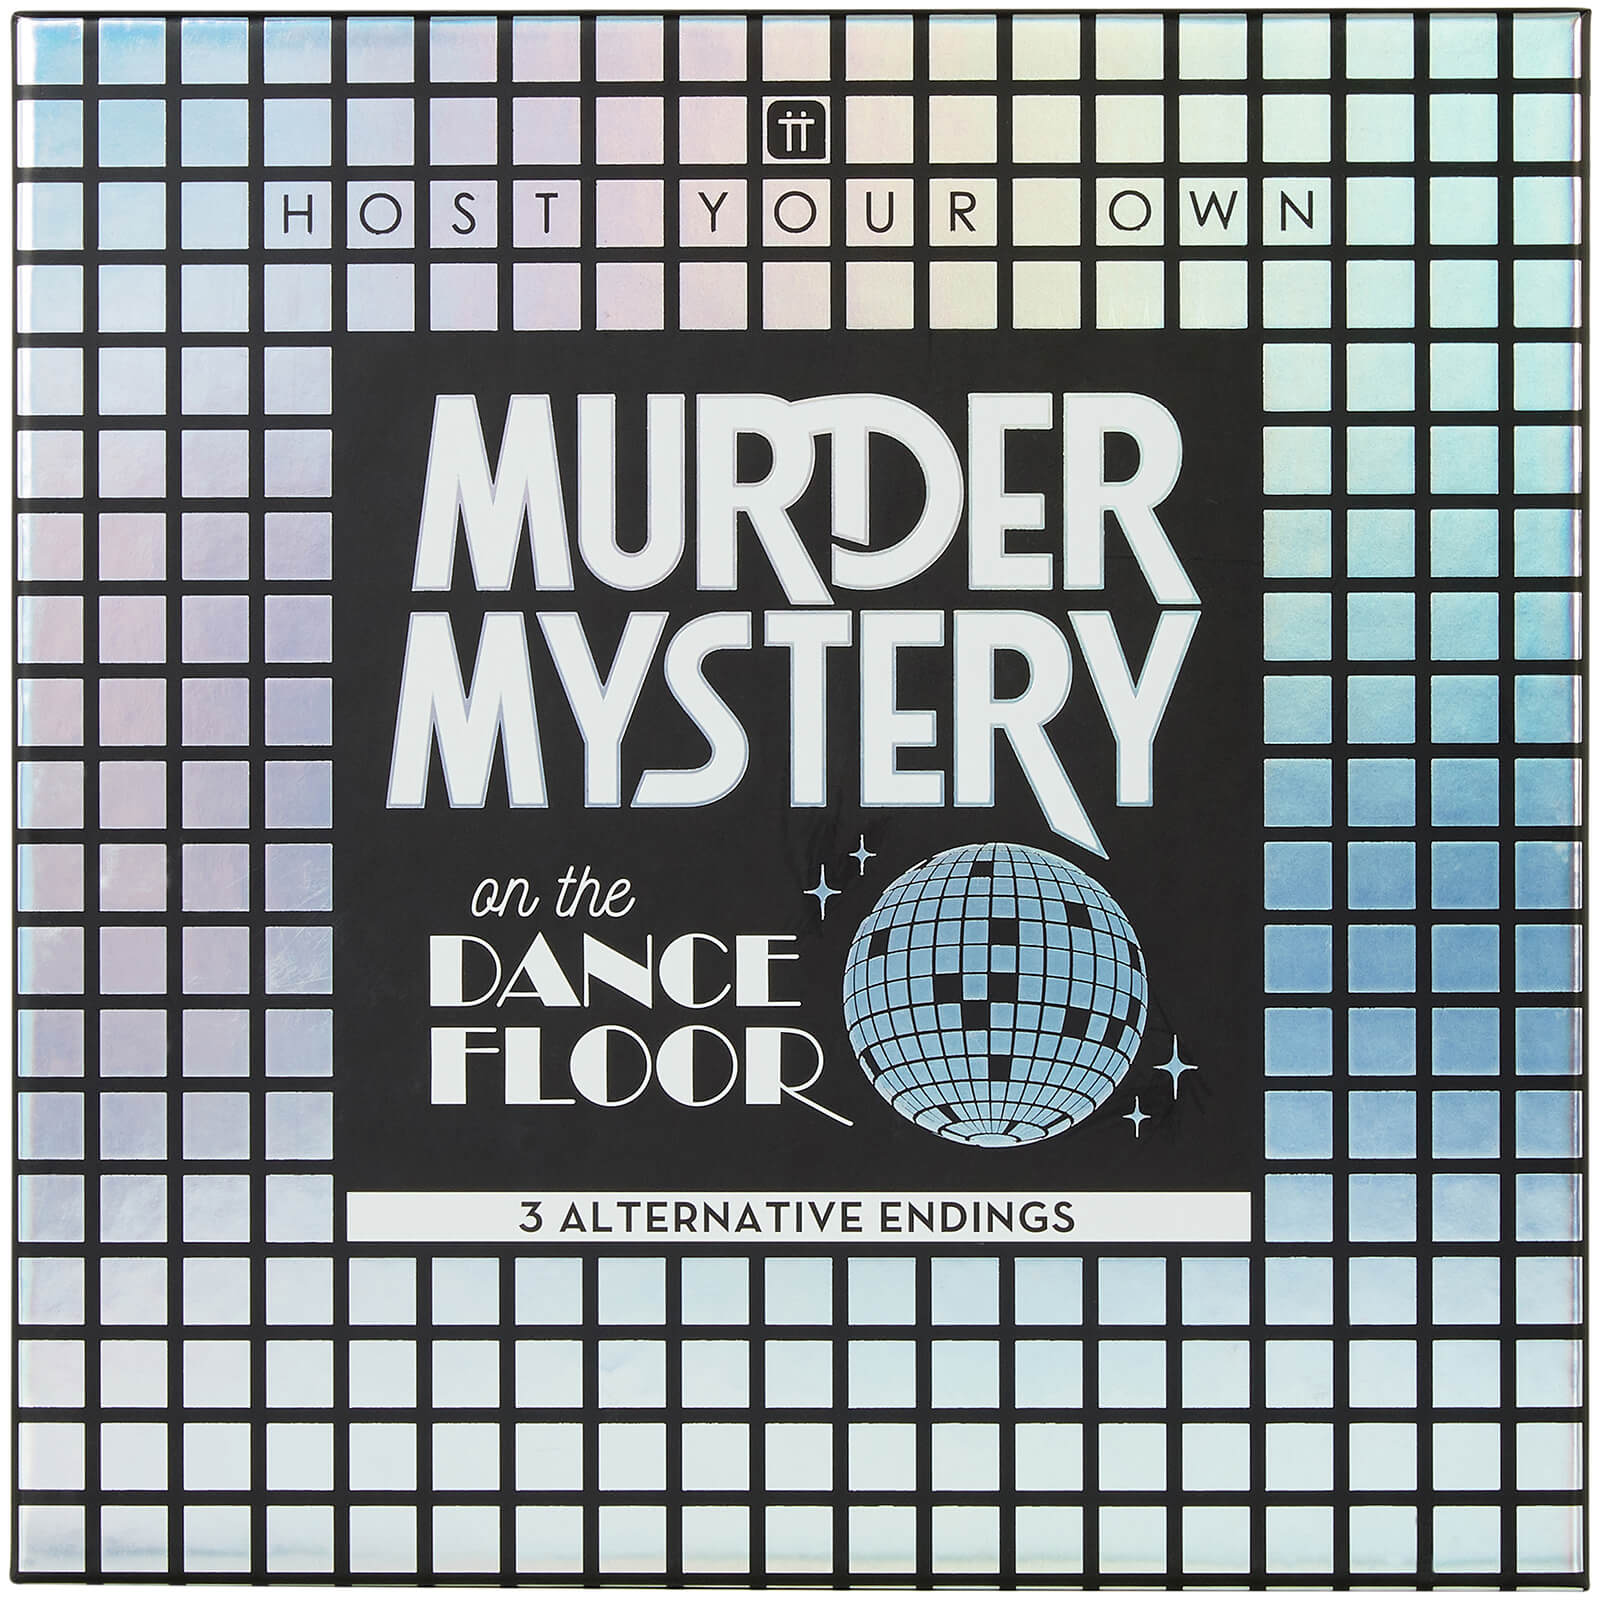 Image of Host Your Own Murder Mystery on the Dancefloor